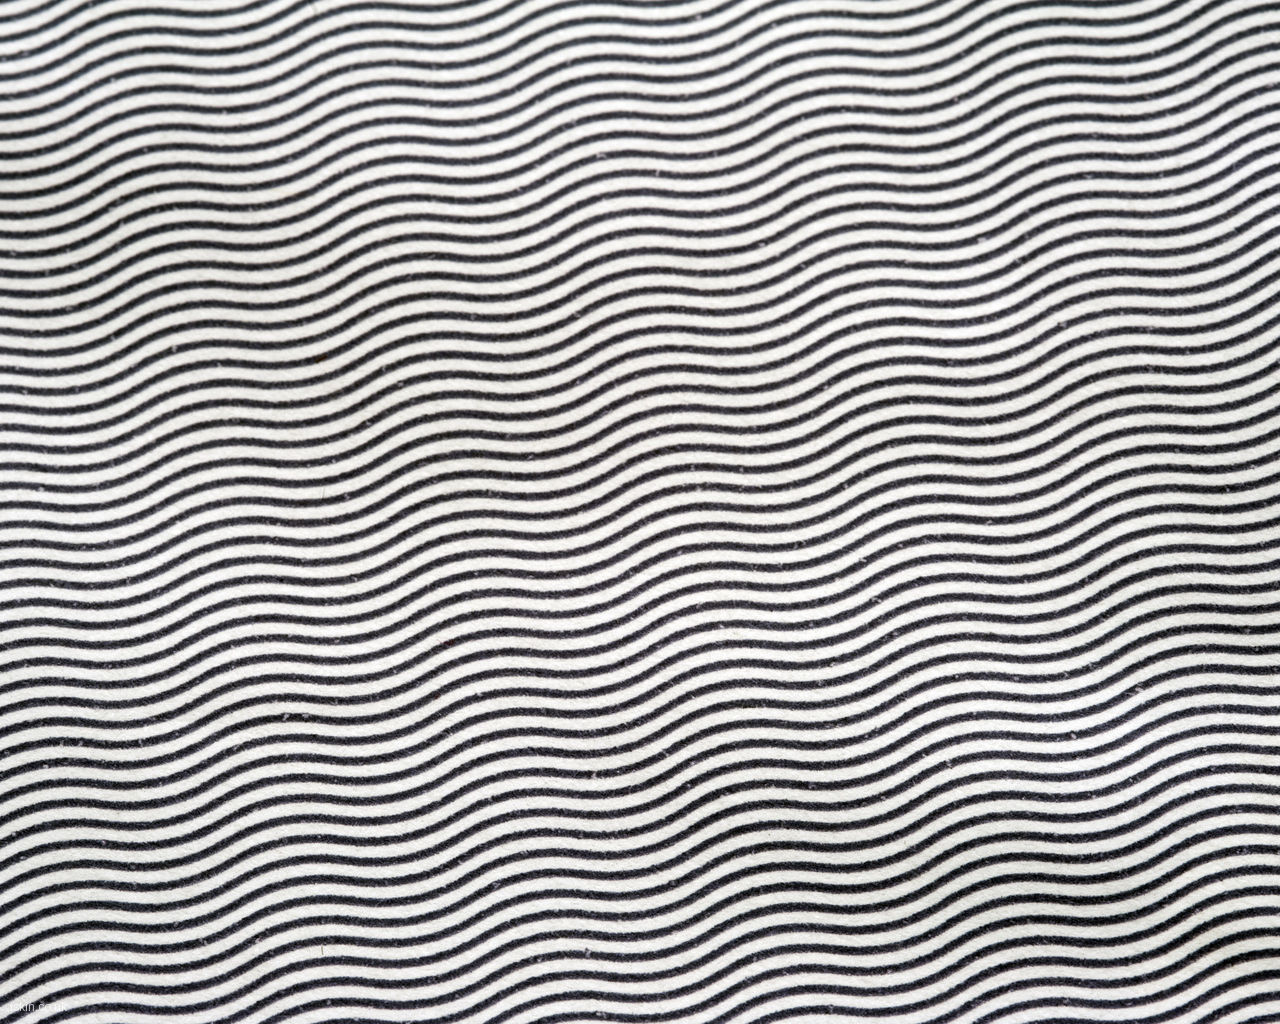 1280x1024 Wave Line Drawing Images Free Download